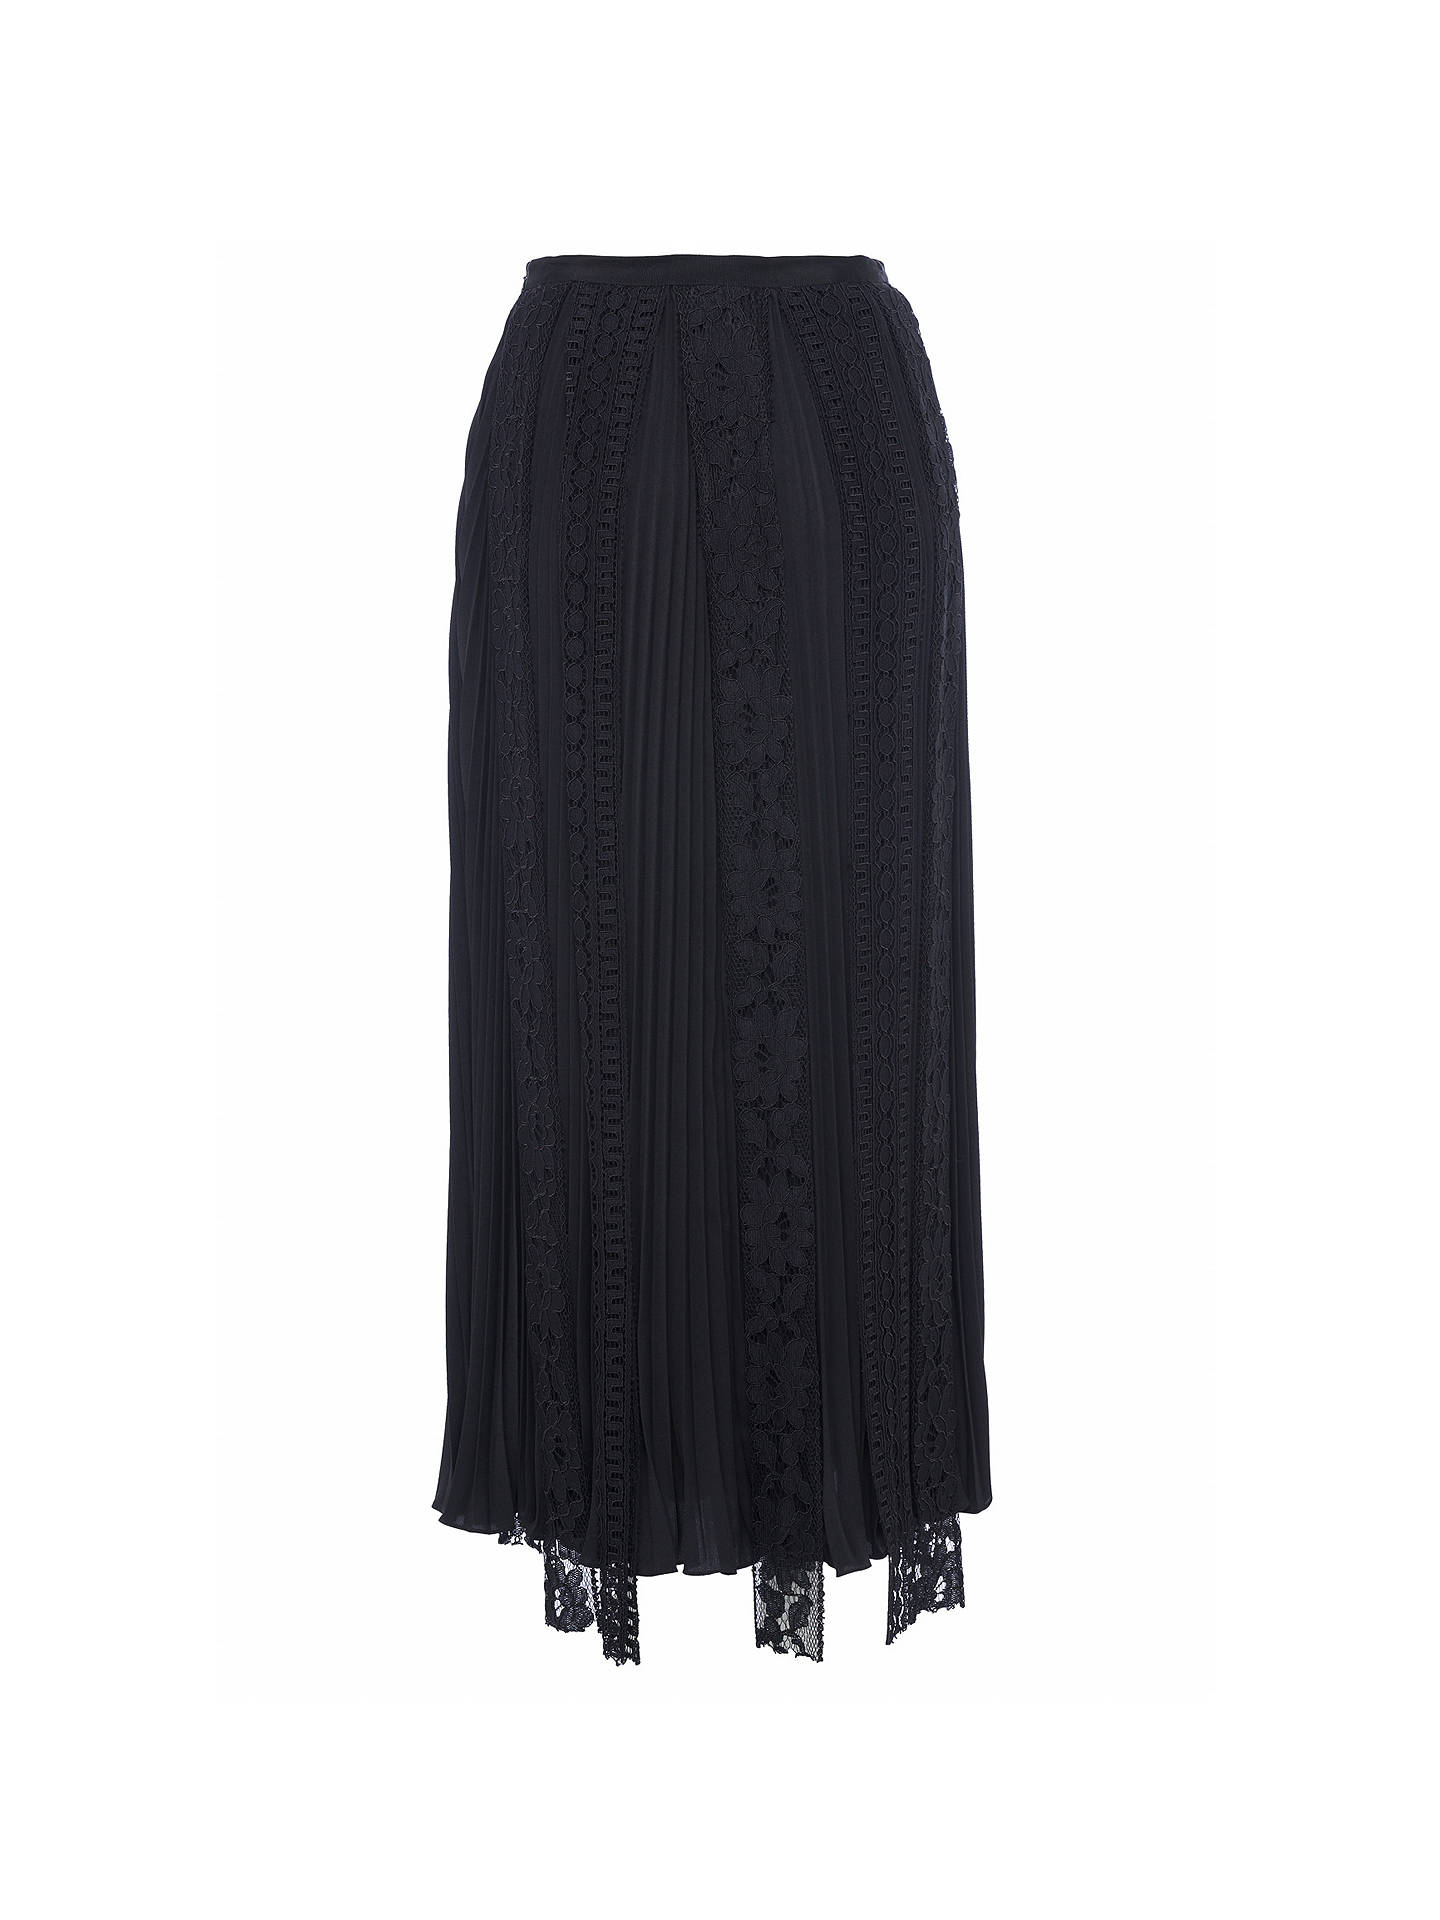 17f8d91fdec Buy French Connection Classic Crepe Maxi Skirt, Black, 6 Online at  johnlewis.com ...